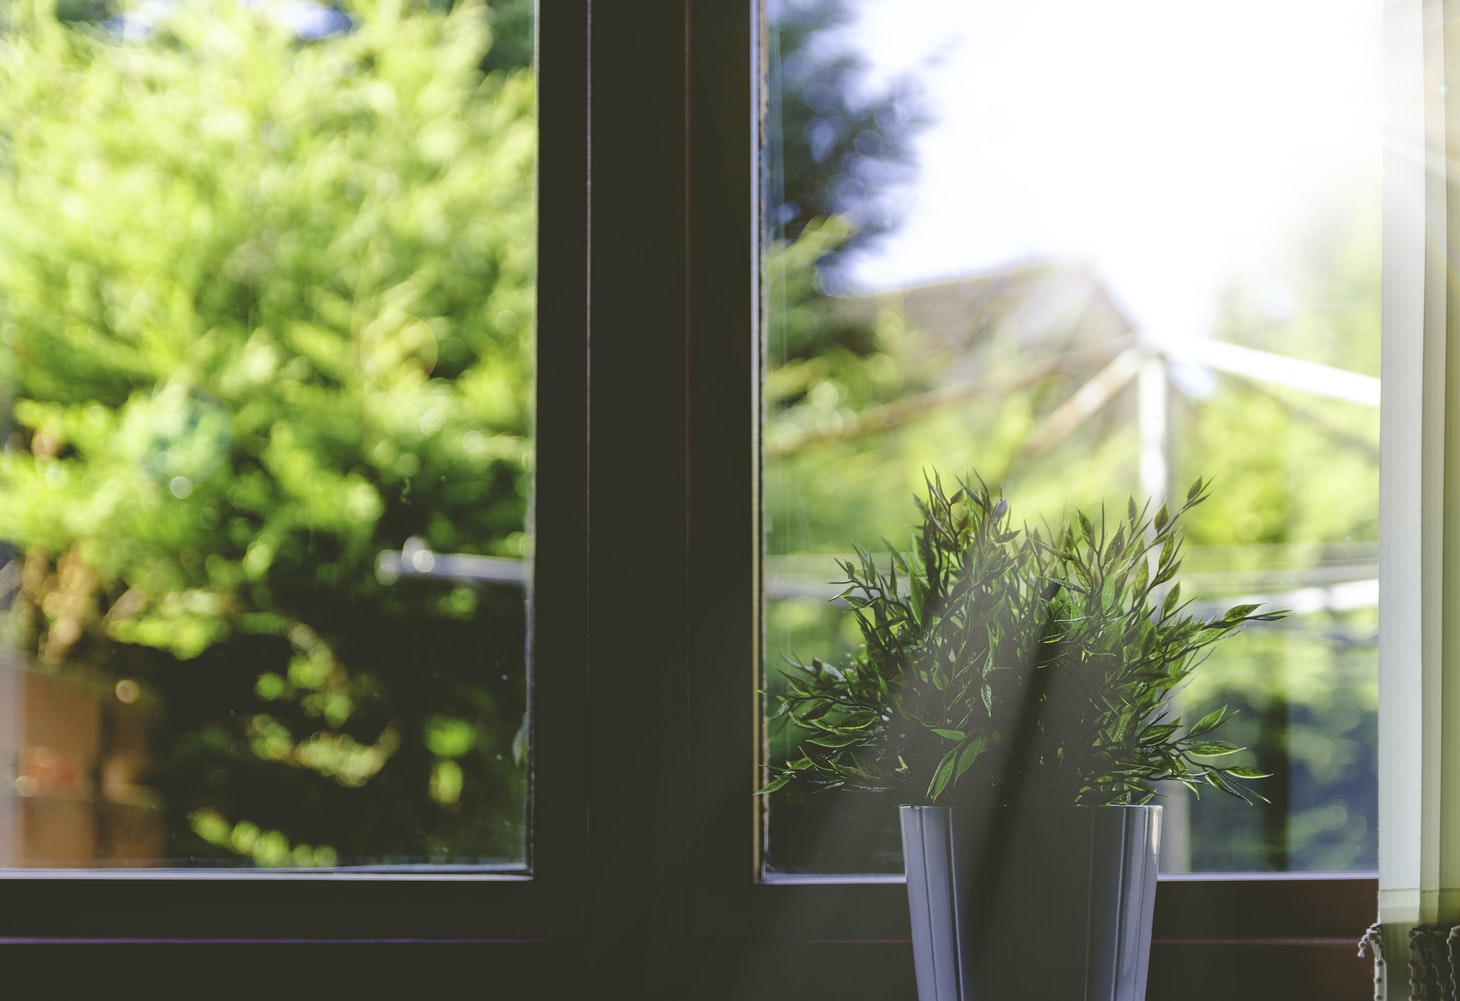 image of green plant in window with sunlight coming through